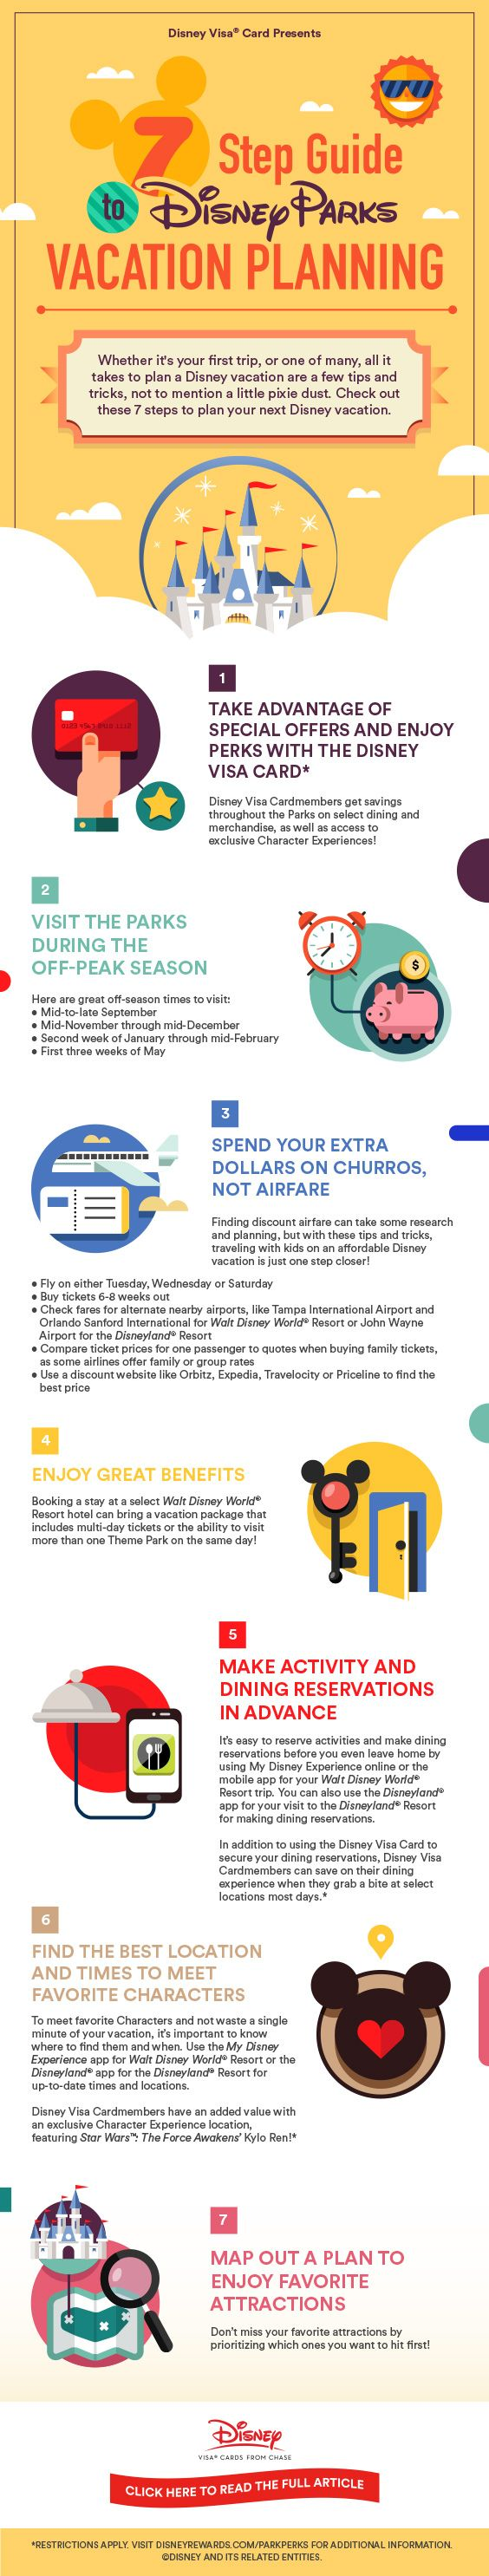 Save big on your next Disney family vacation using your Disney Visa® Card and a few of these smart-planning tips and tricks!